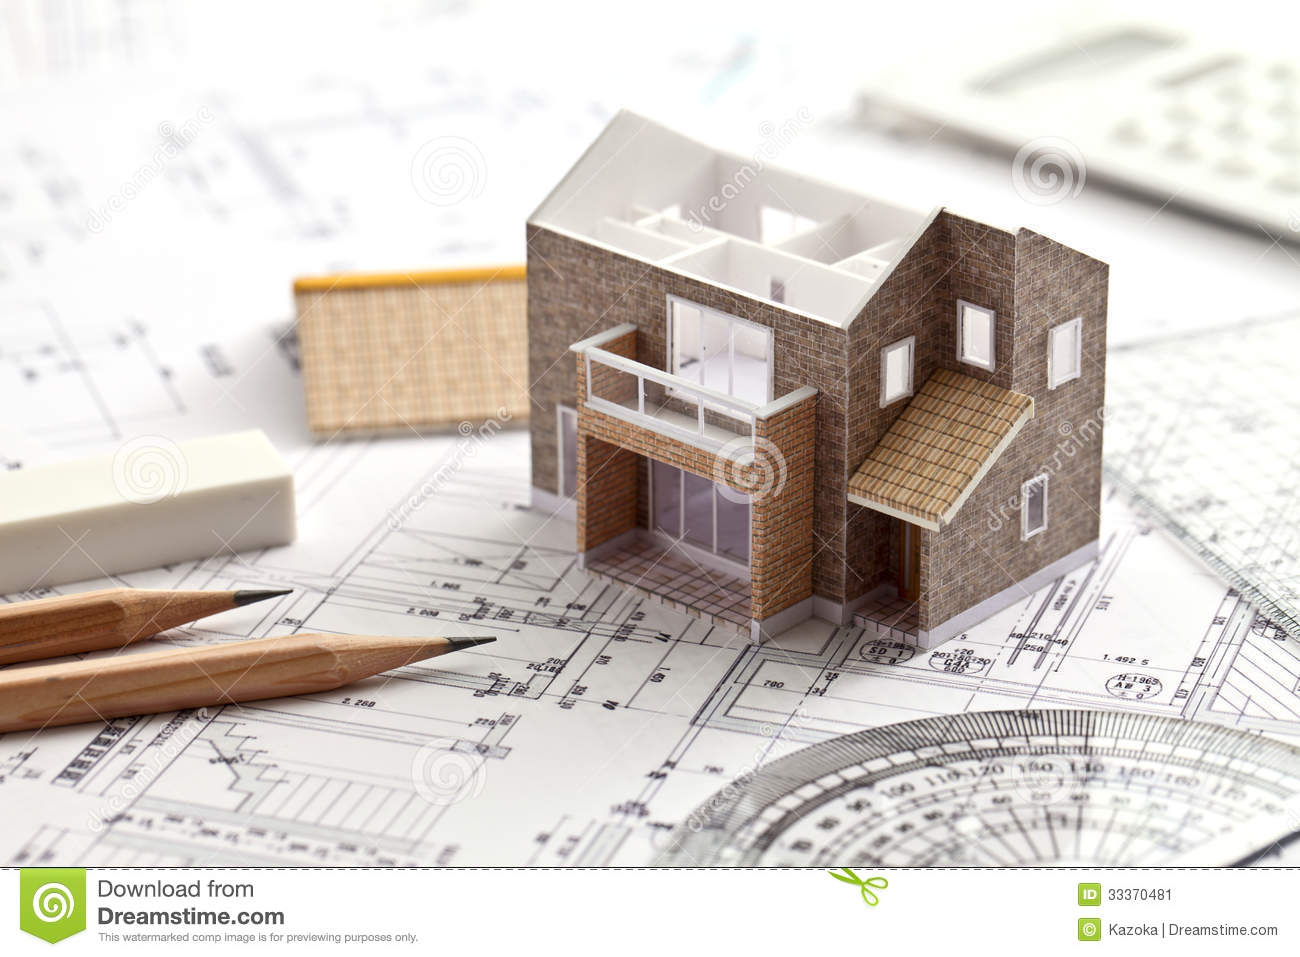 House design drawing stock image image 33370481 for Create your own building